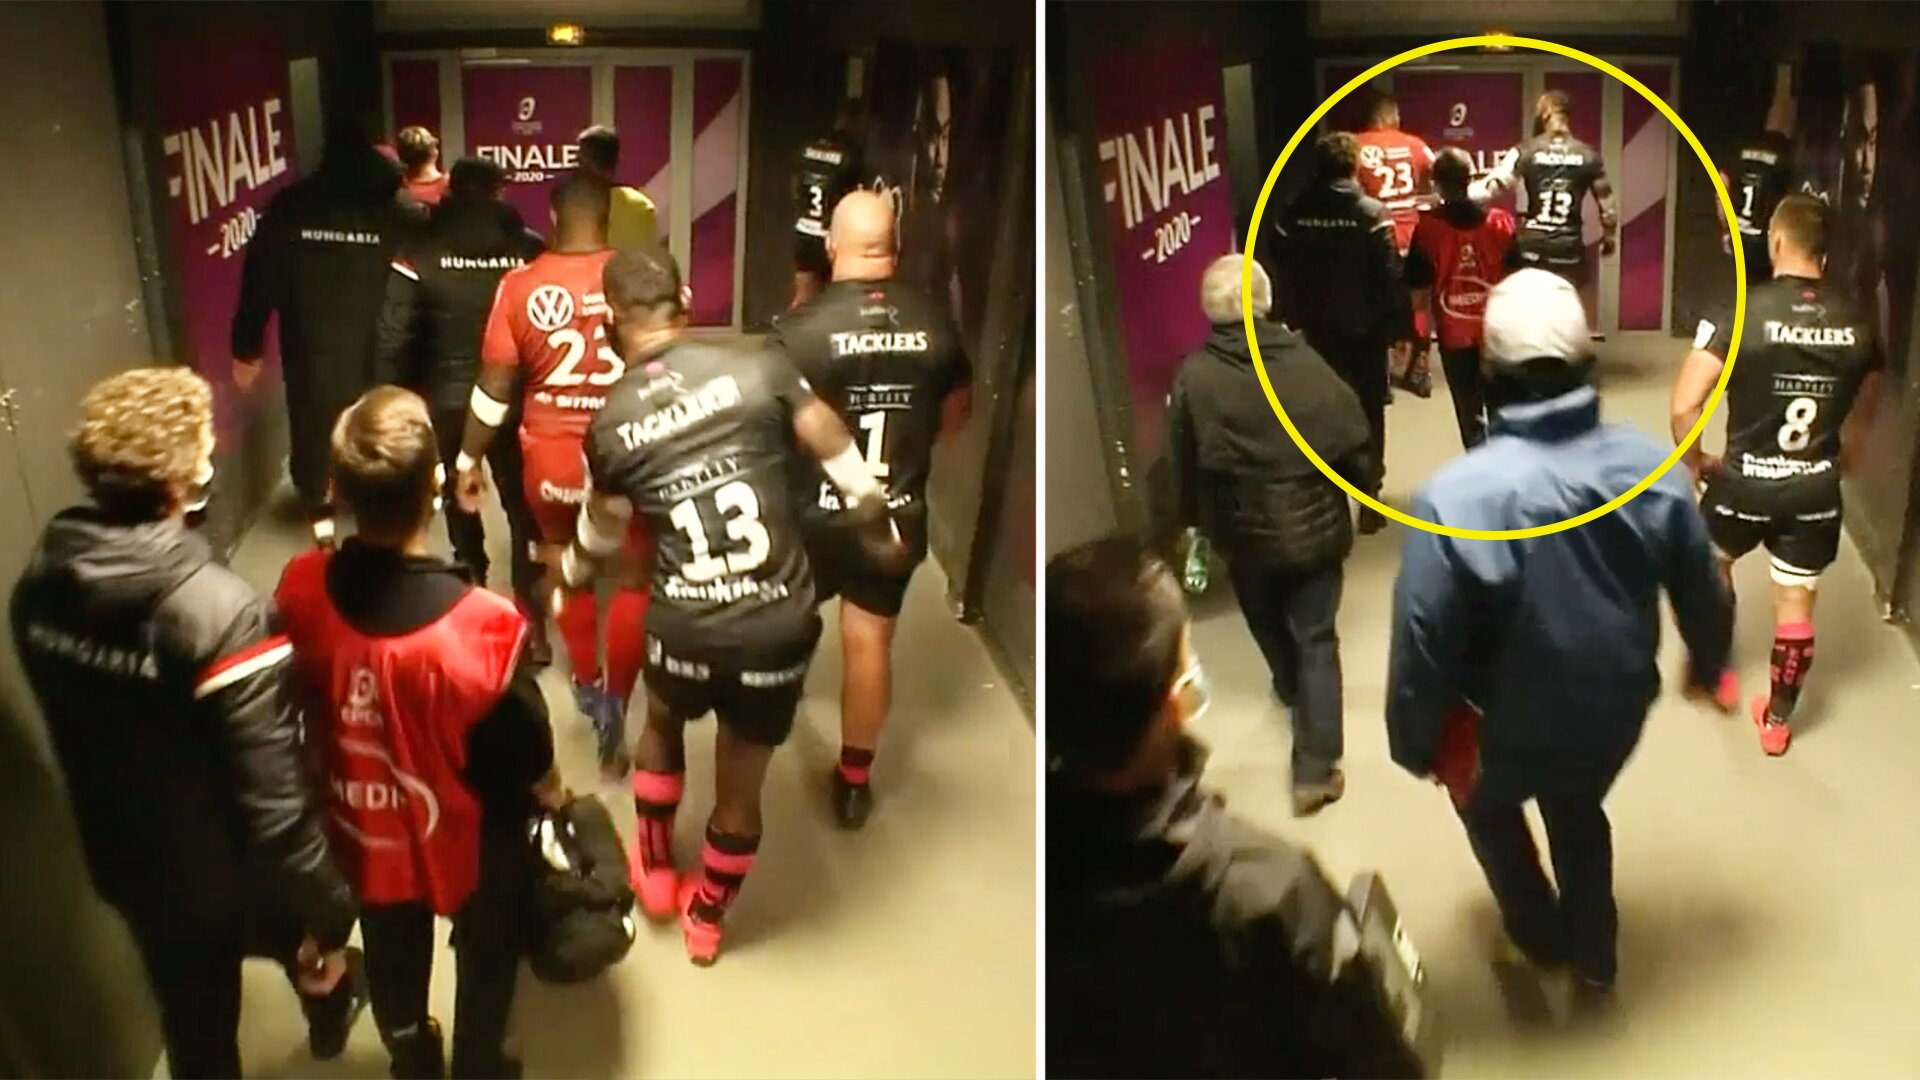 Challenge Cup final gets heated as players clash in the tunnel at half time